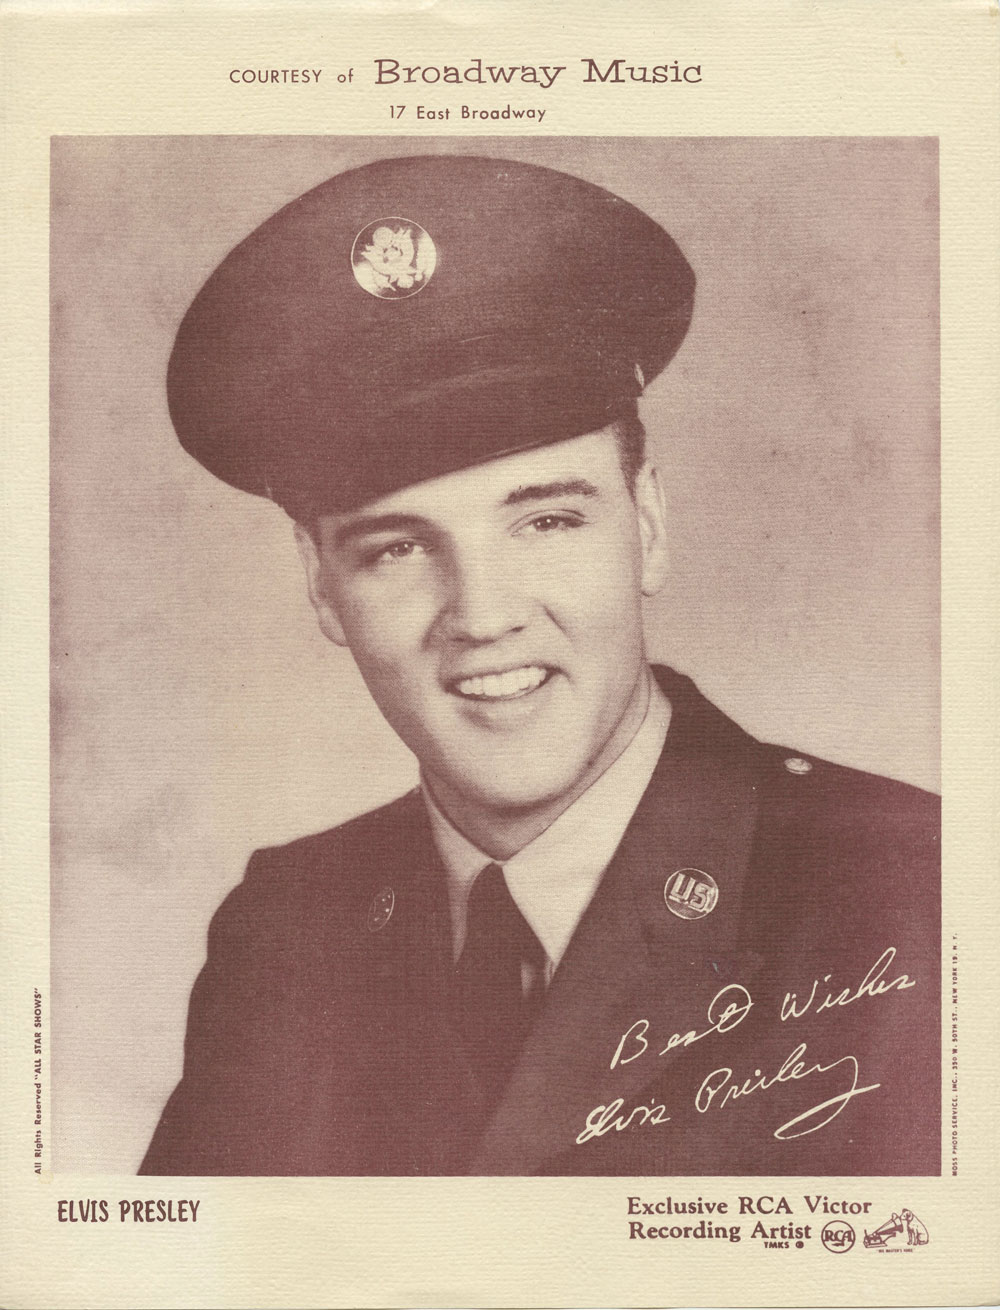 Elvis Presley 1958 In The Army Portrait Photo RCA Victor Recording